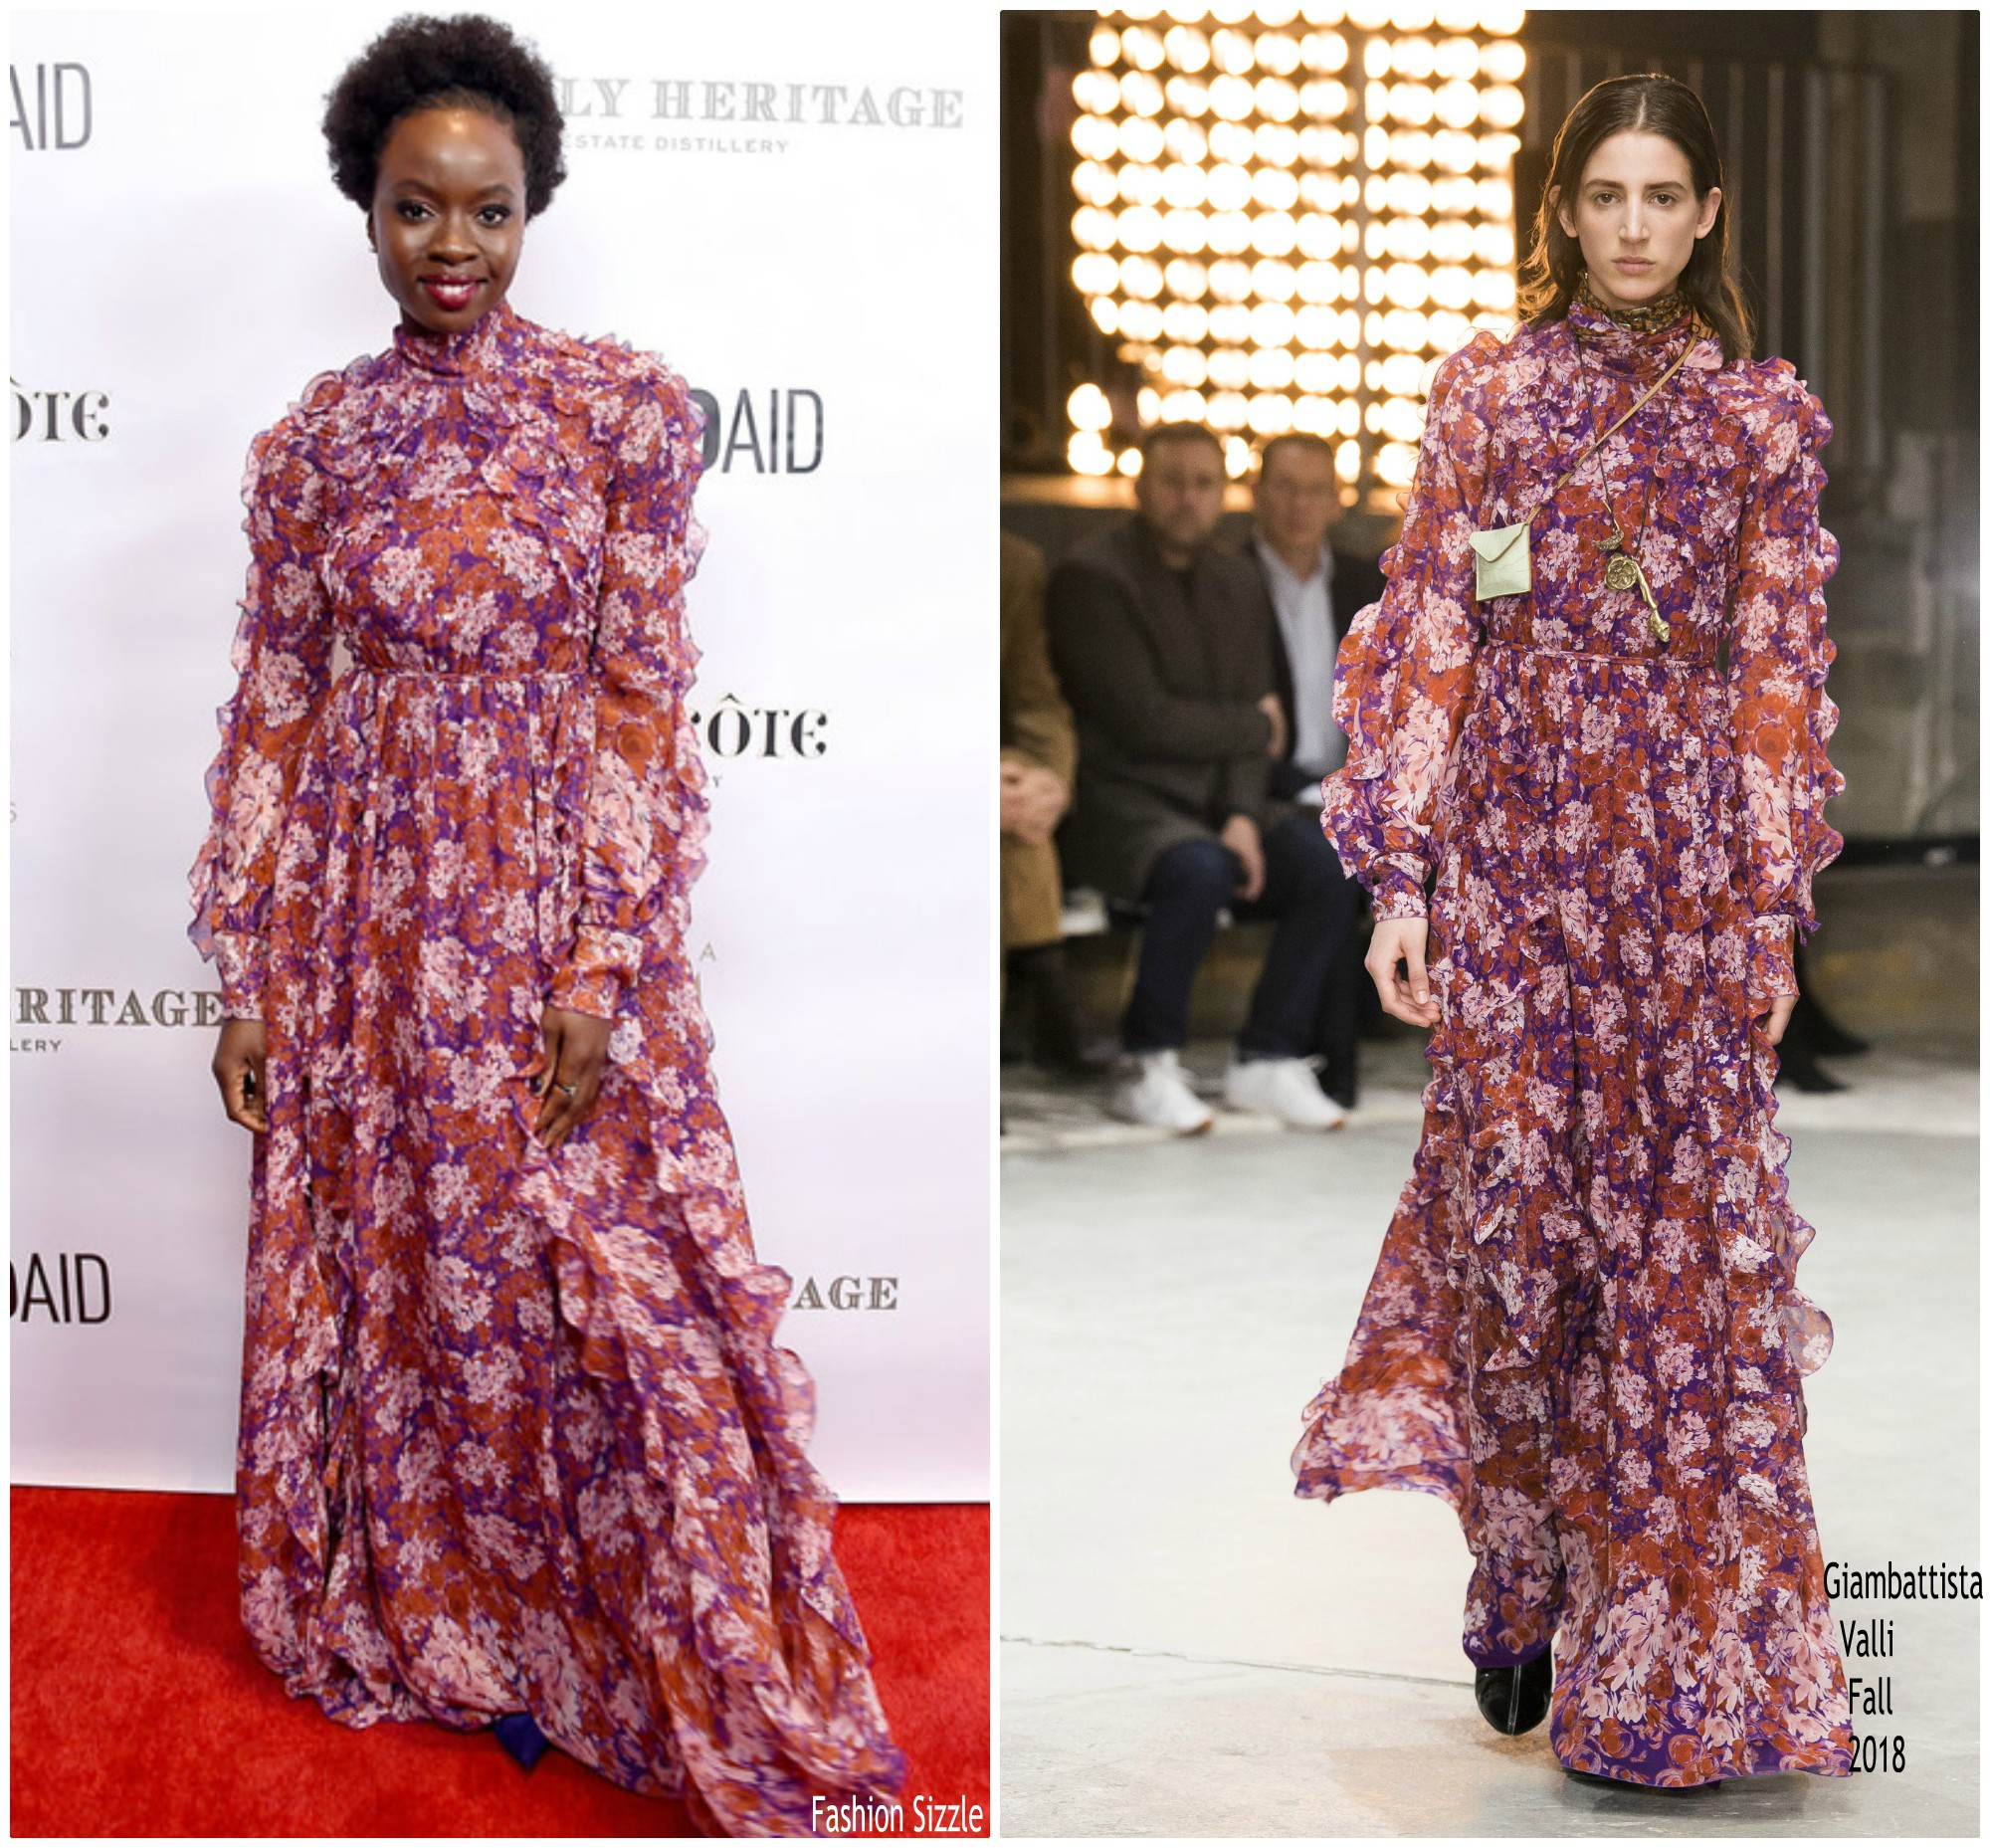 danai-gurira-in-giambattista-valli-an-evening-in-china-with-wild-aid